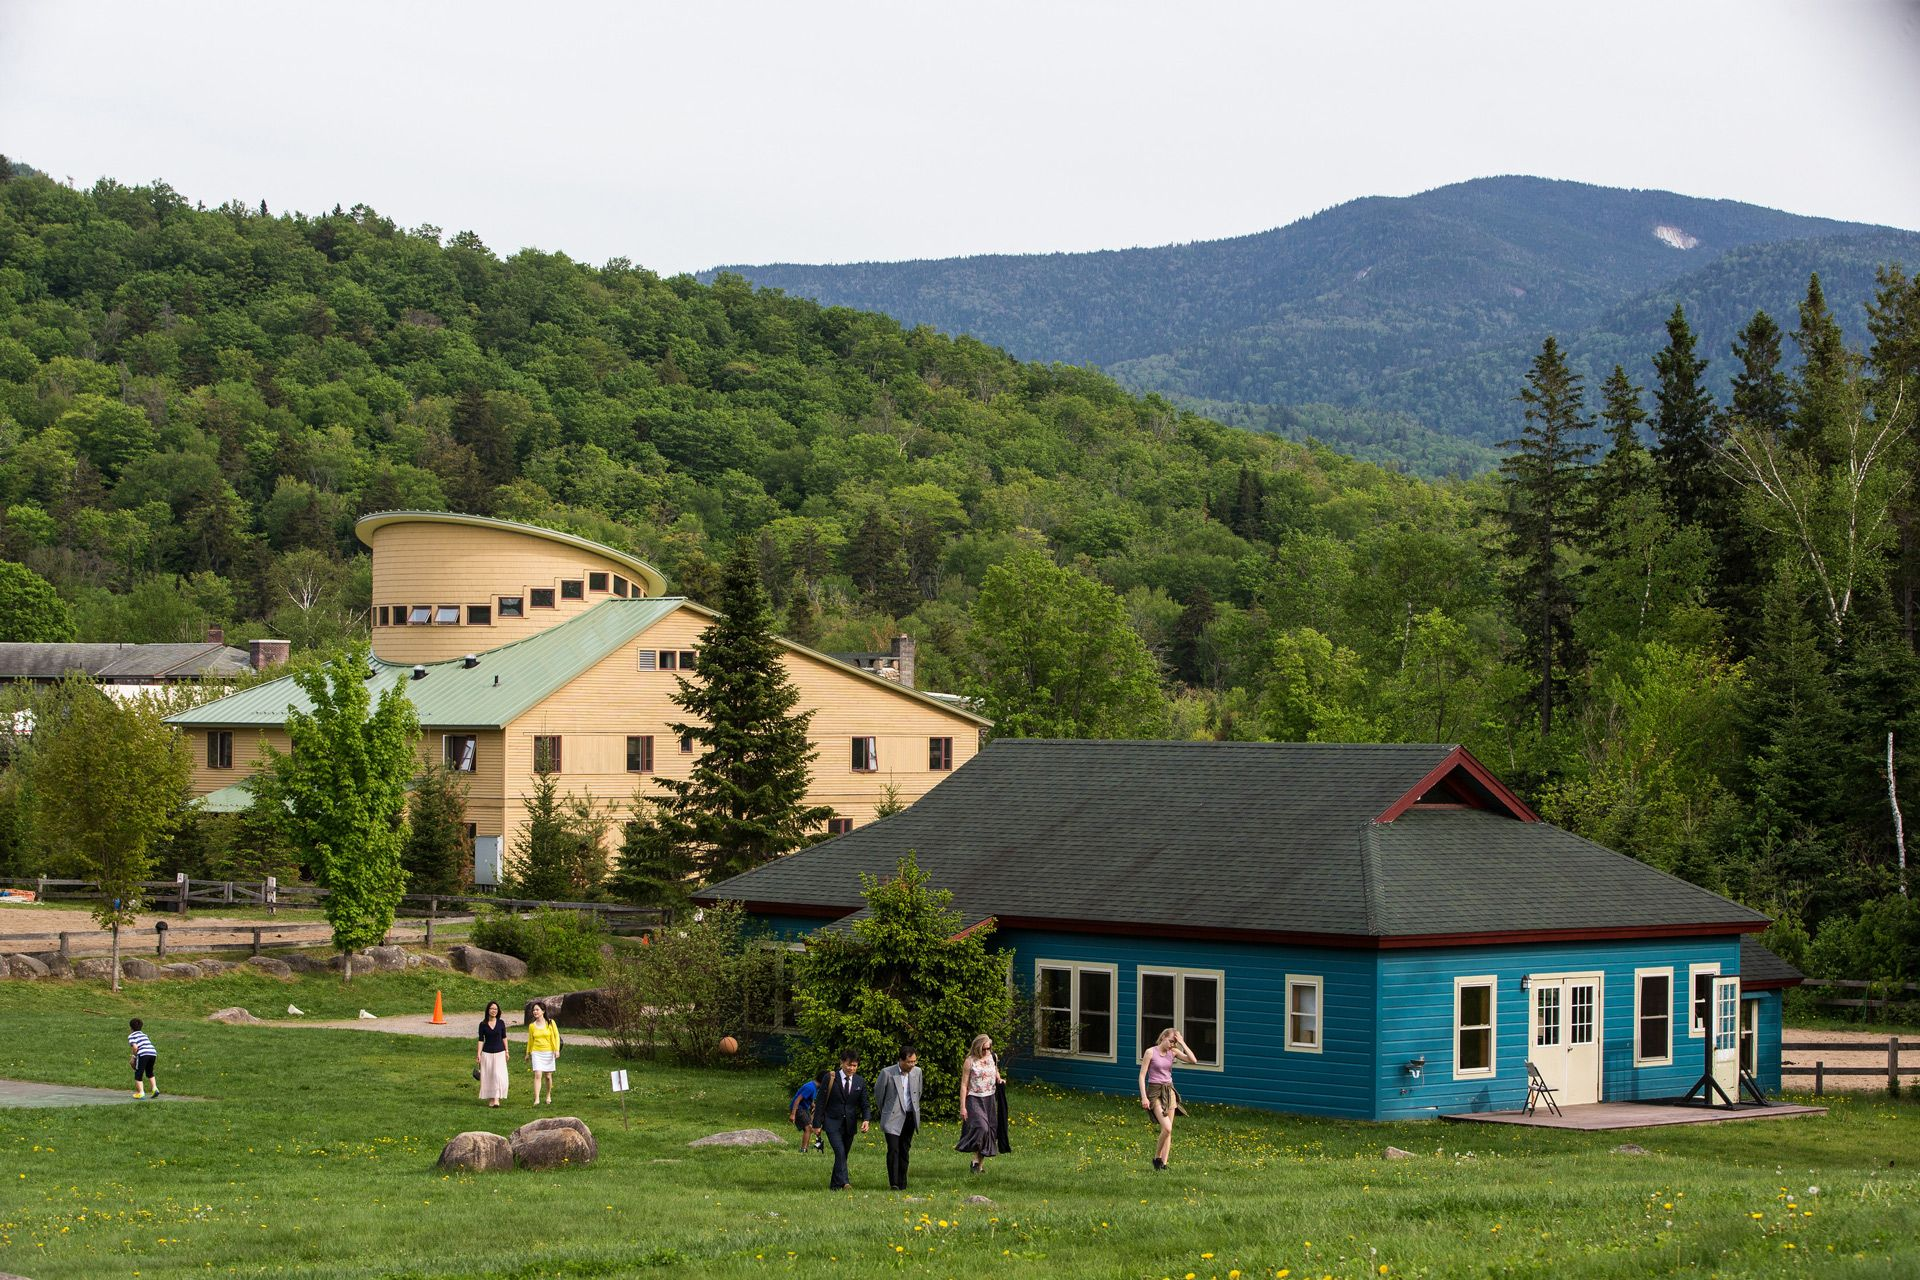 The member schools in our network — Junior Boarding School Association —  are all located in New England ...